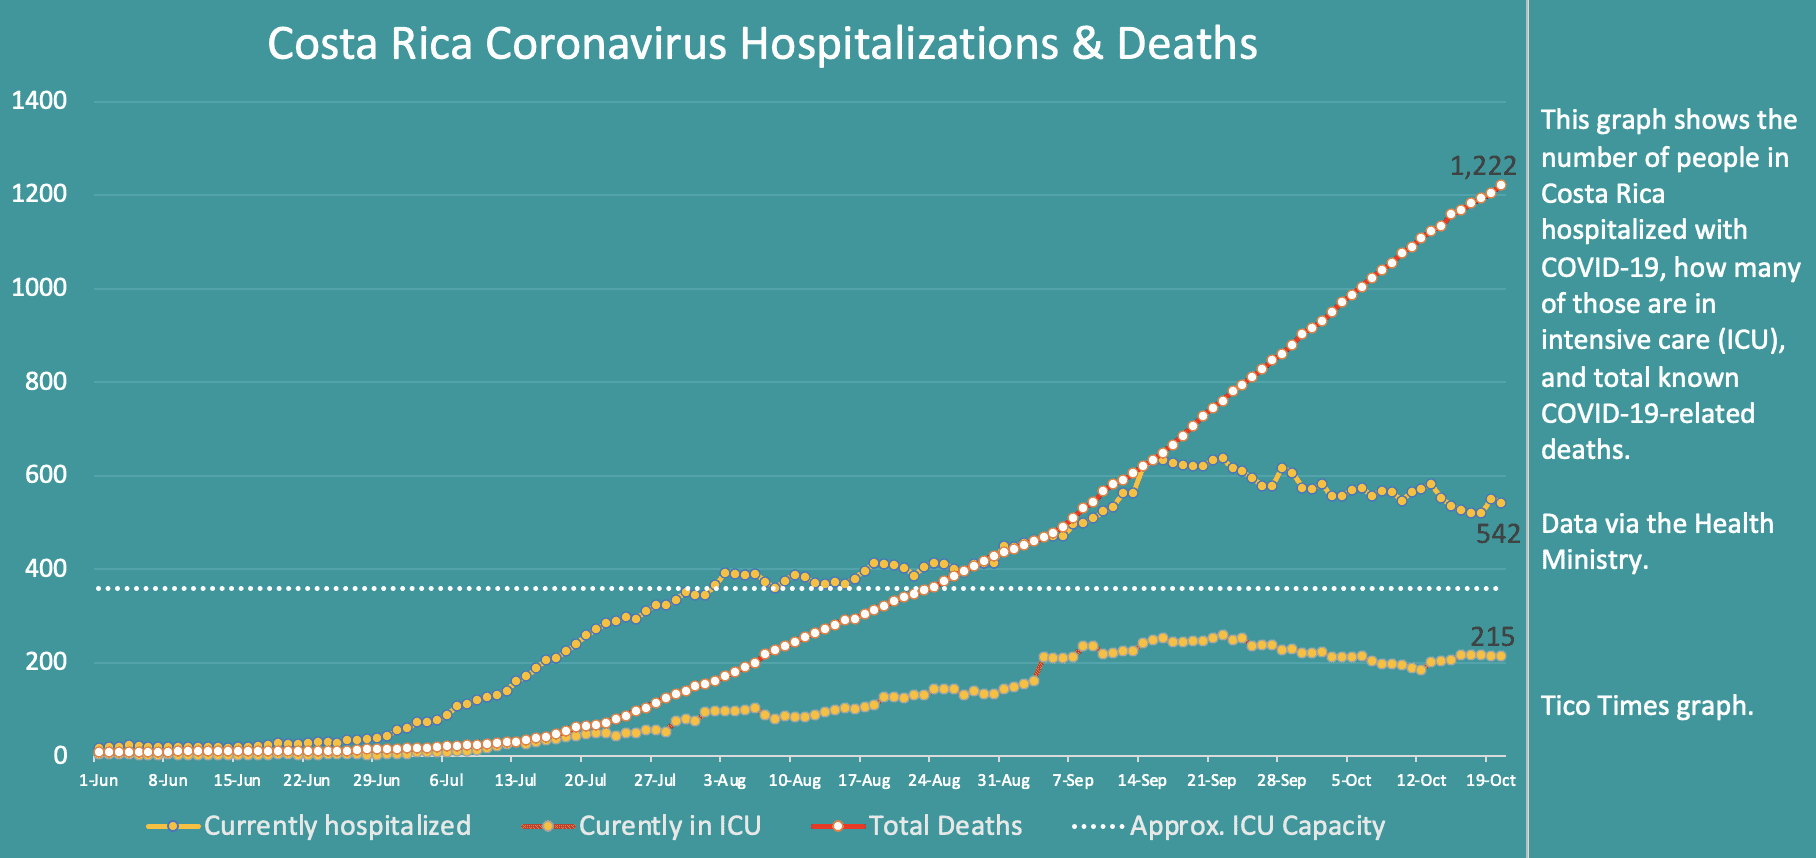 Costa Rica coronavirus hospitalizations and deaths on Tuesday, October 20, 2020